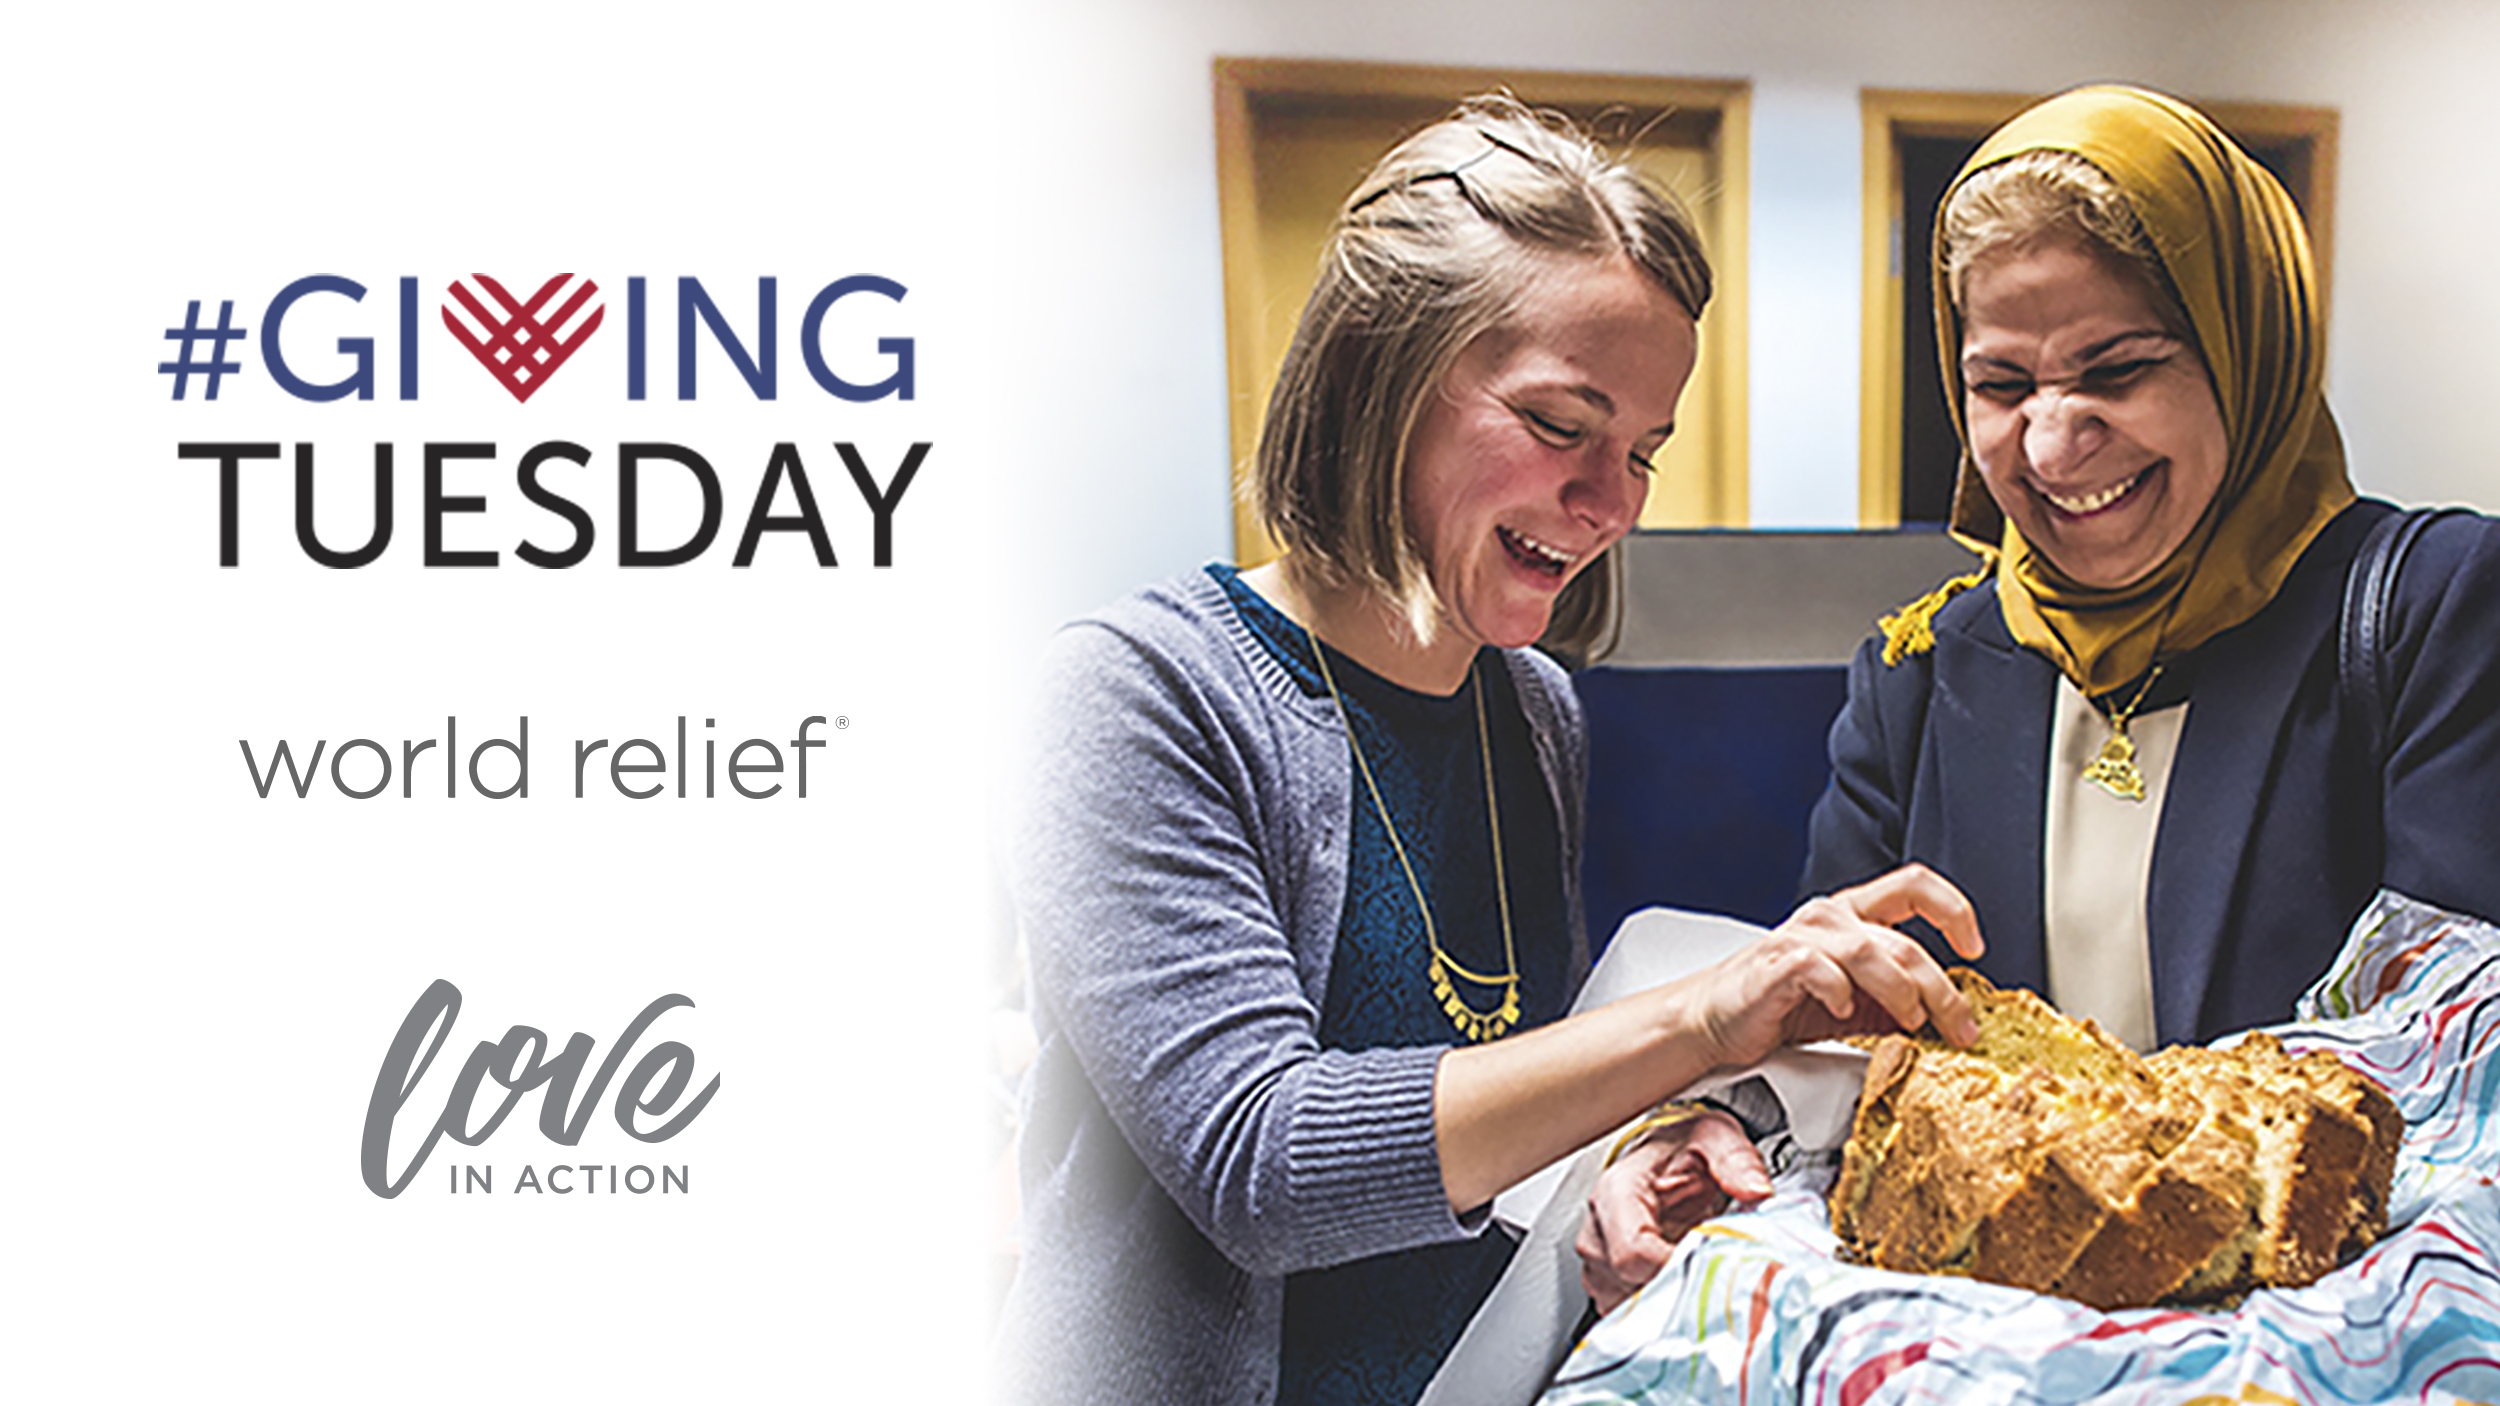 171122-Giving-Tuesday-Blog-Header.jpg